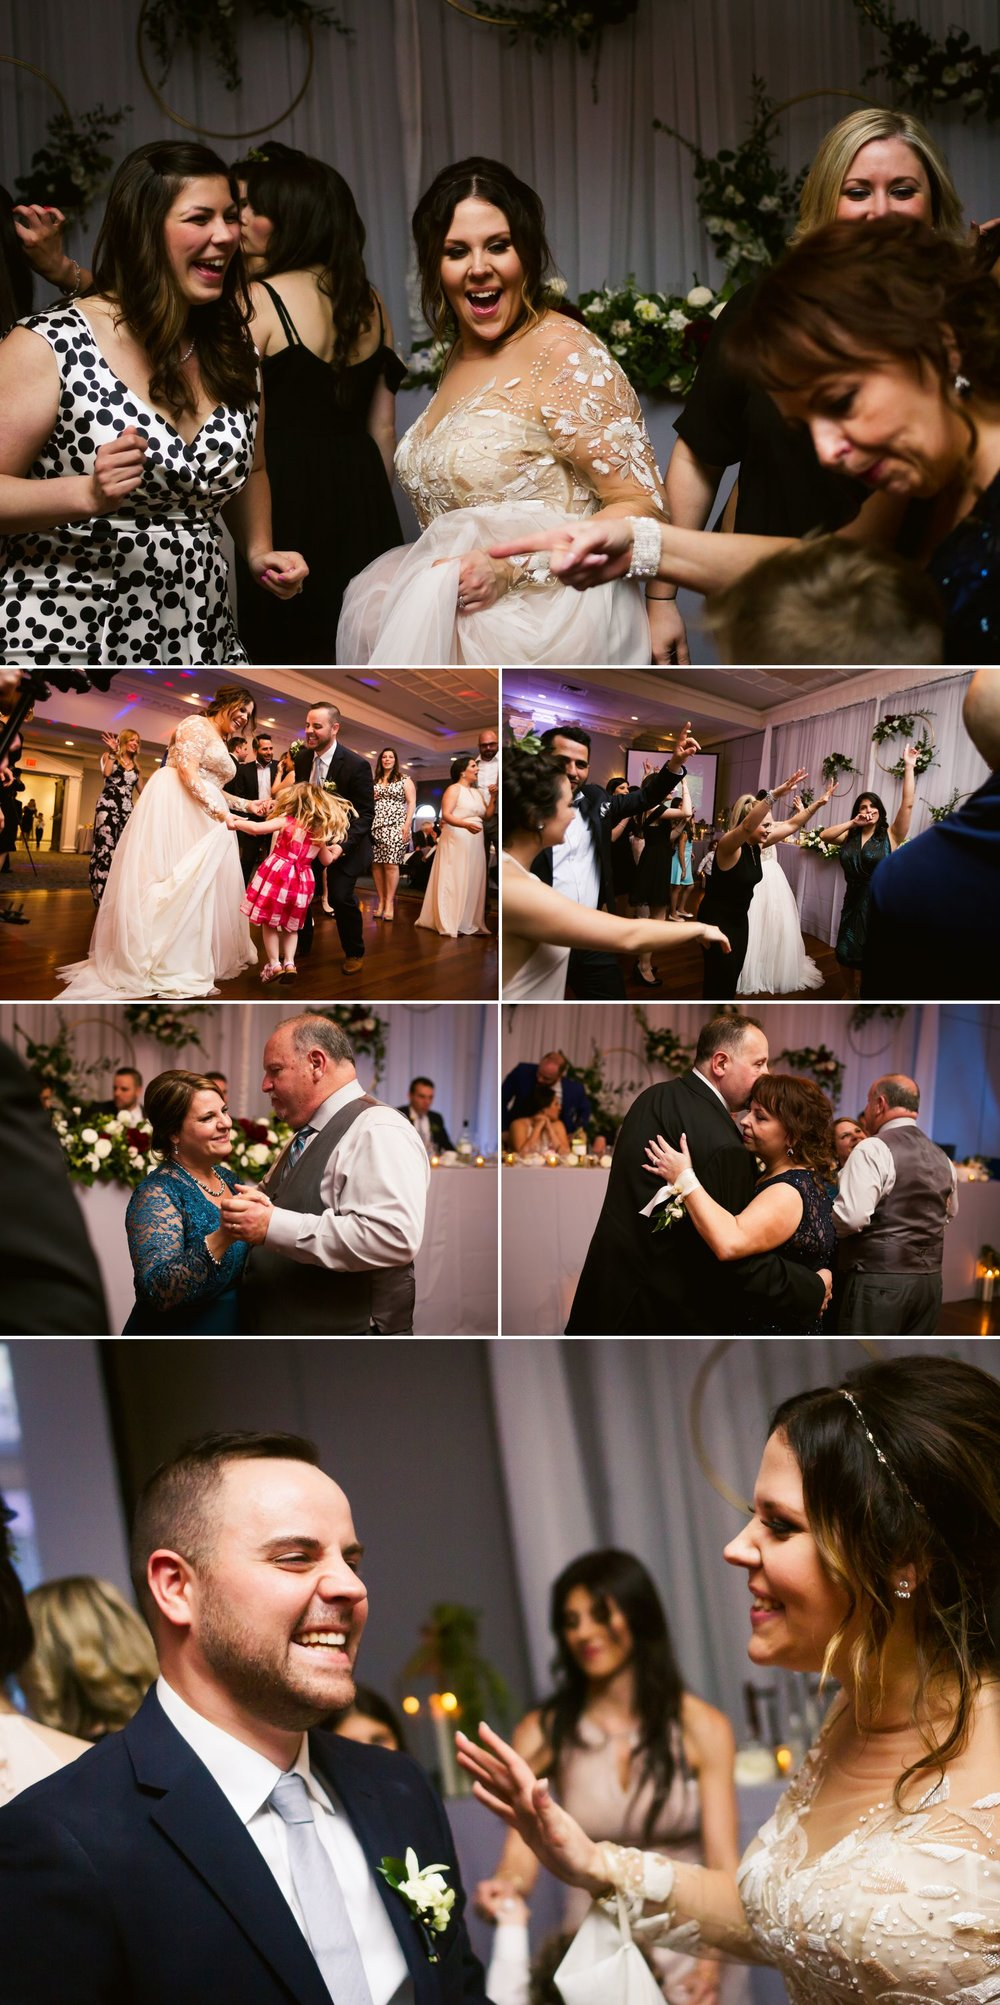 The bride and groom dancing with guests during their wedding reception at Sala San Marco in Ottawa